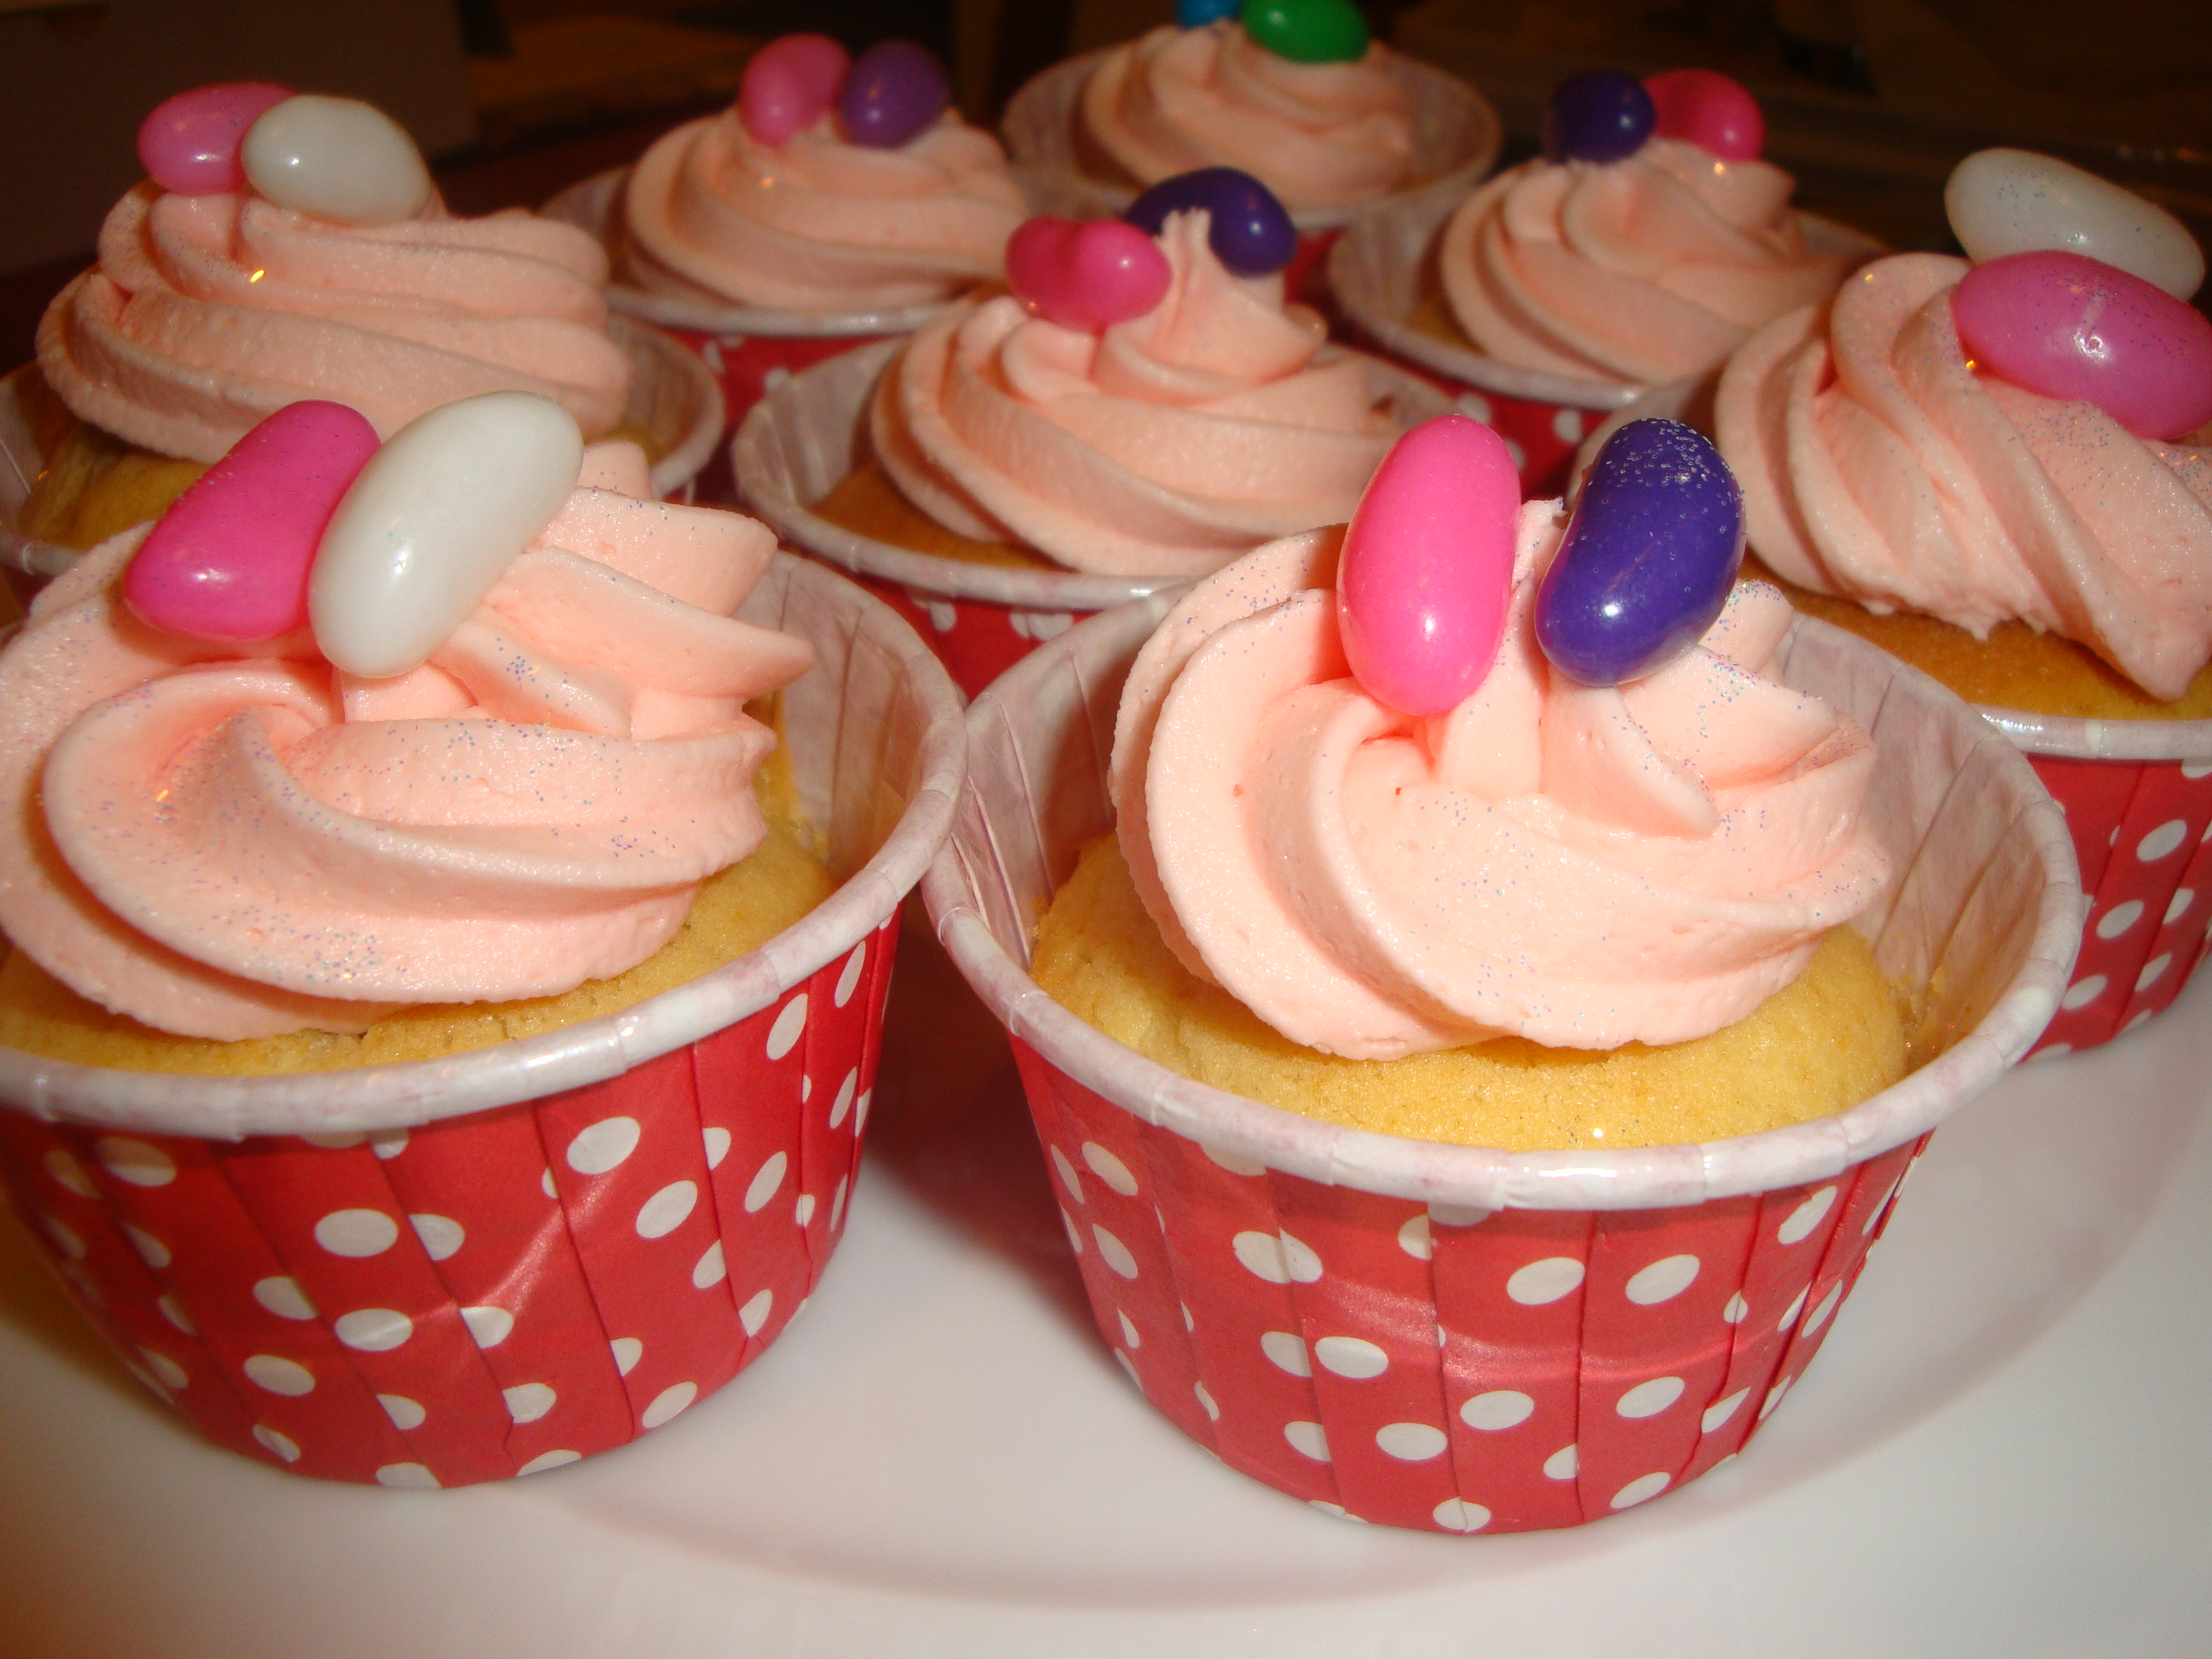 Cute Cupcakes For Boys Birthday http://cupcakes2delite.com/tag/cute-cupcakes-with-jelly-beans/